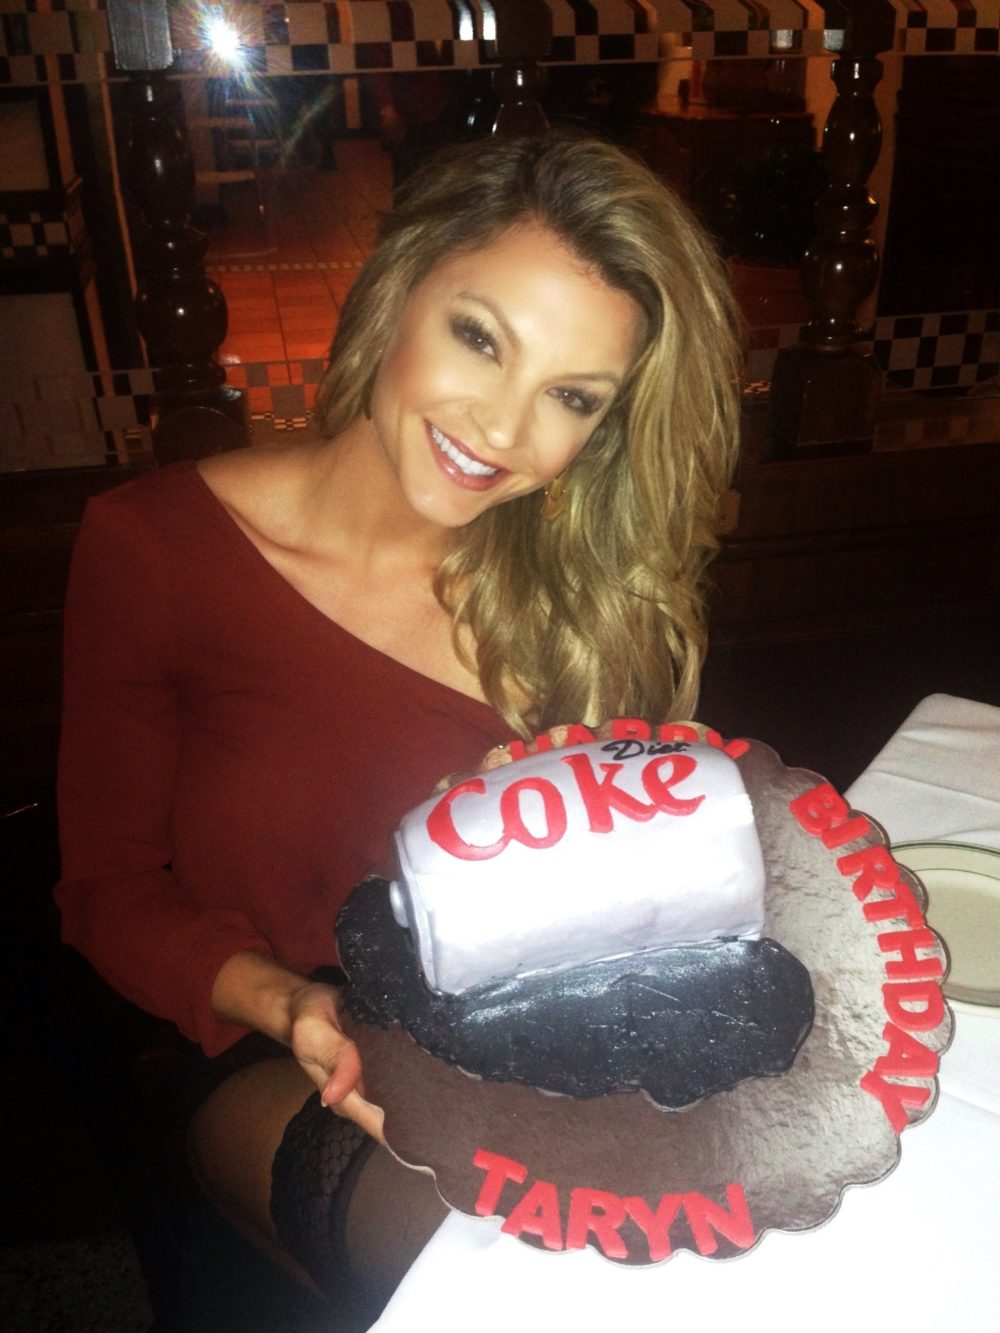 When your good friend knows you all too well and your love for diet coke, you end up with this for your birthday... Thanks Ry! Ha.